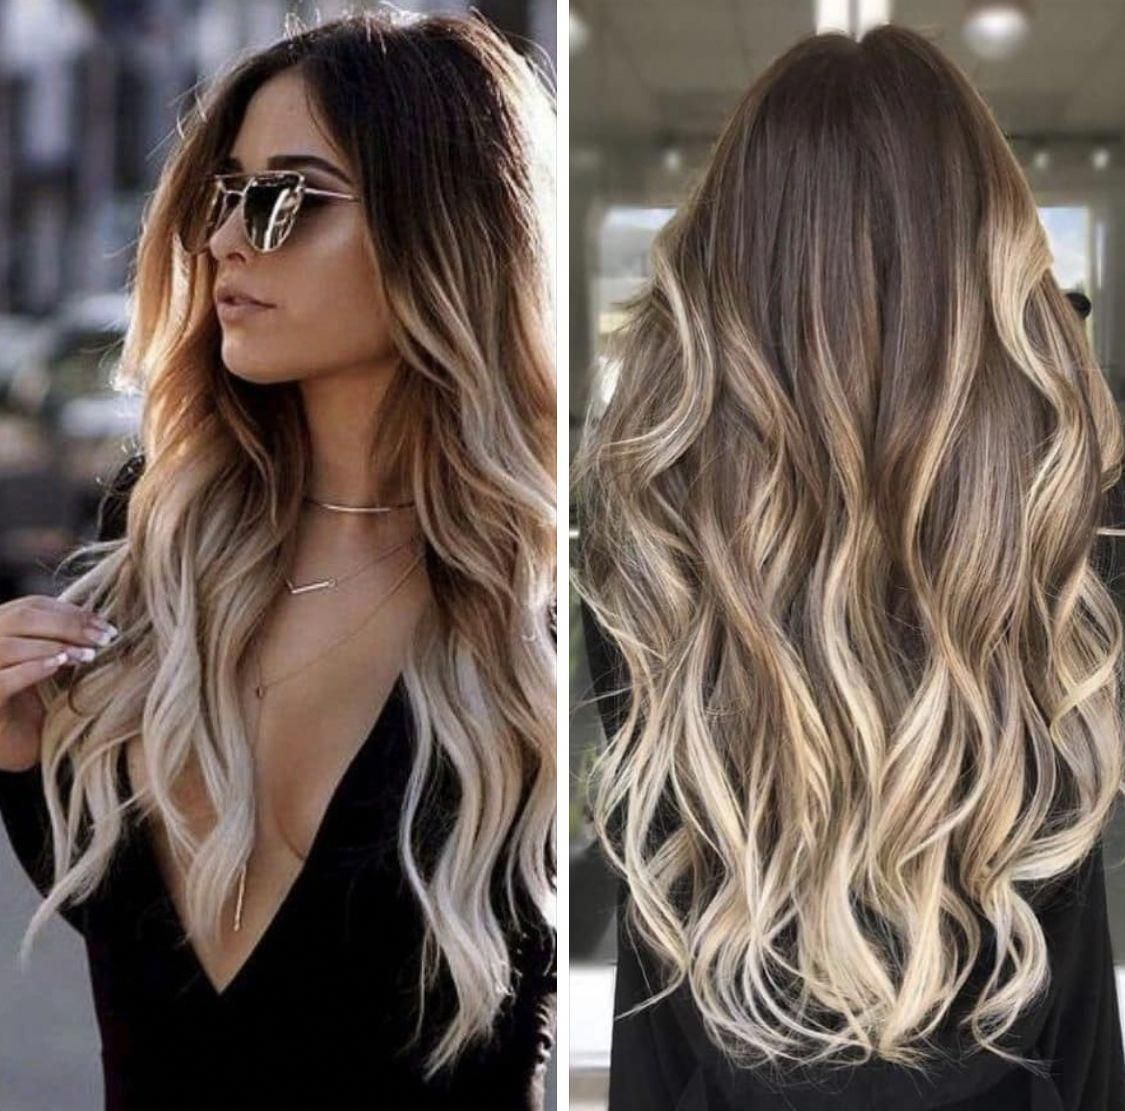 Ombre Hair Color Water In 2020 Brunette Hair Color Long Hair Color Ombre Hair Color For Brunettes